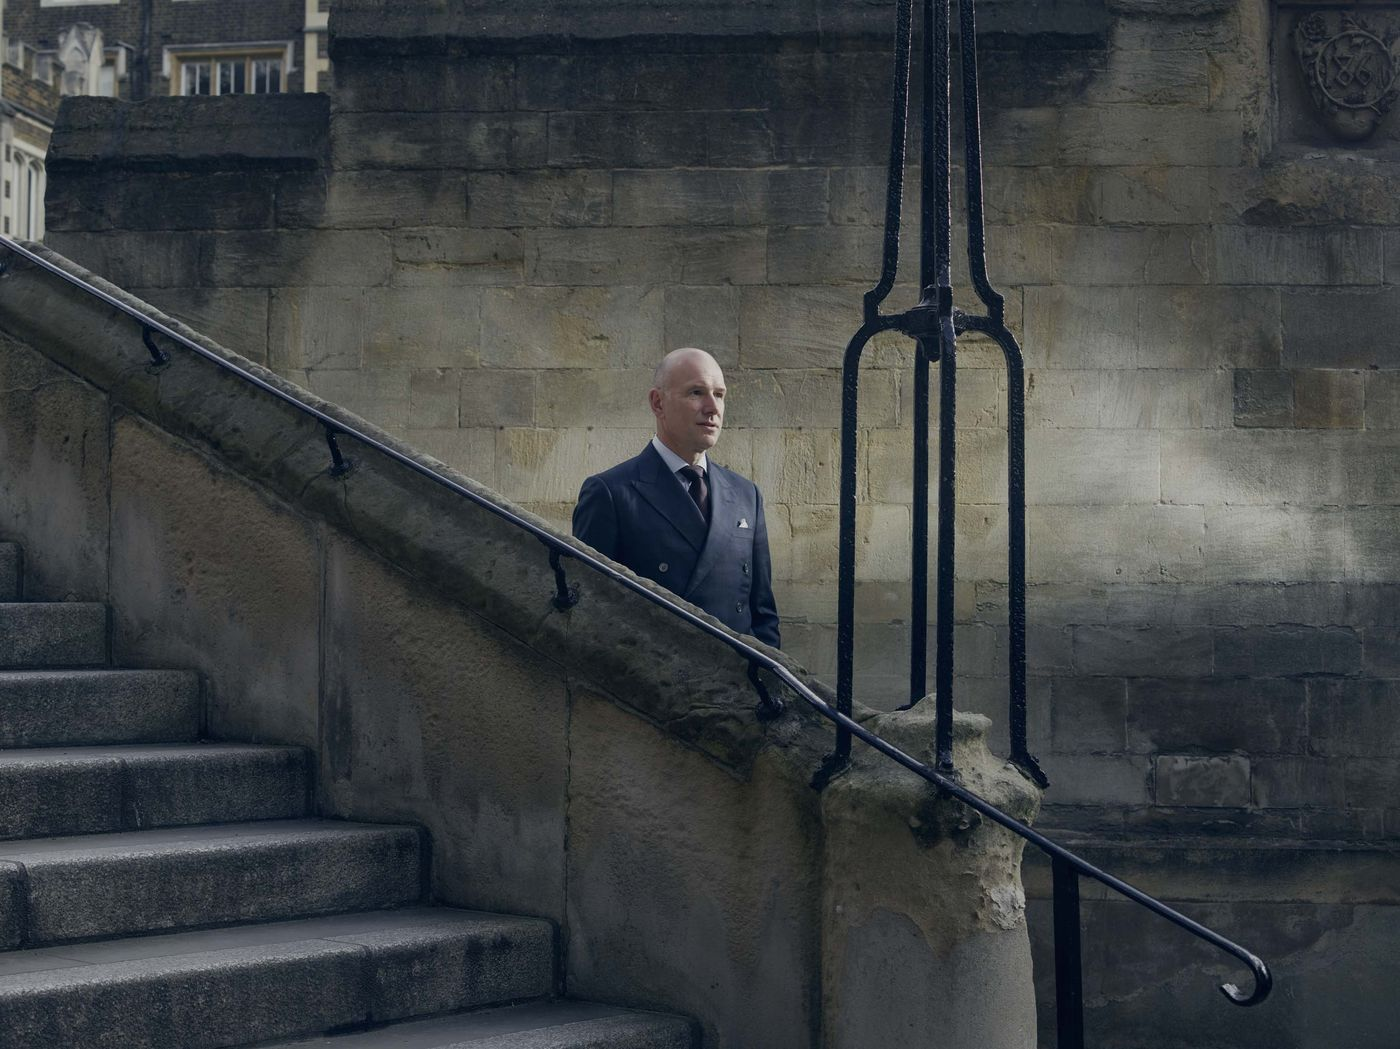 The Exquisitely English (and Amazingly Lucrative) World of London Clerks - Bloomberg